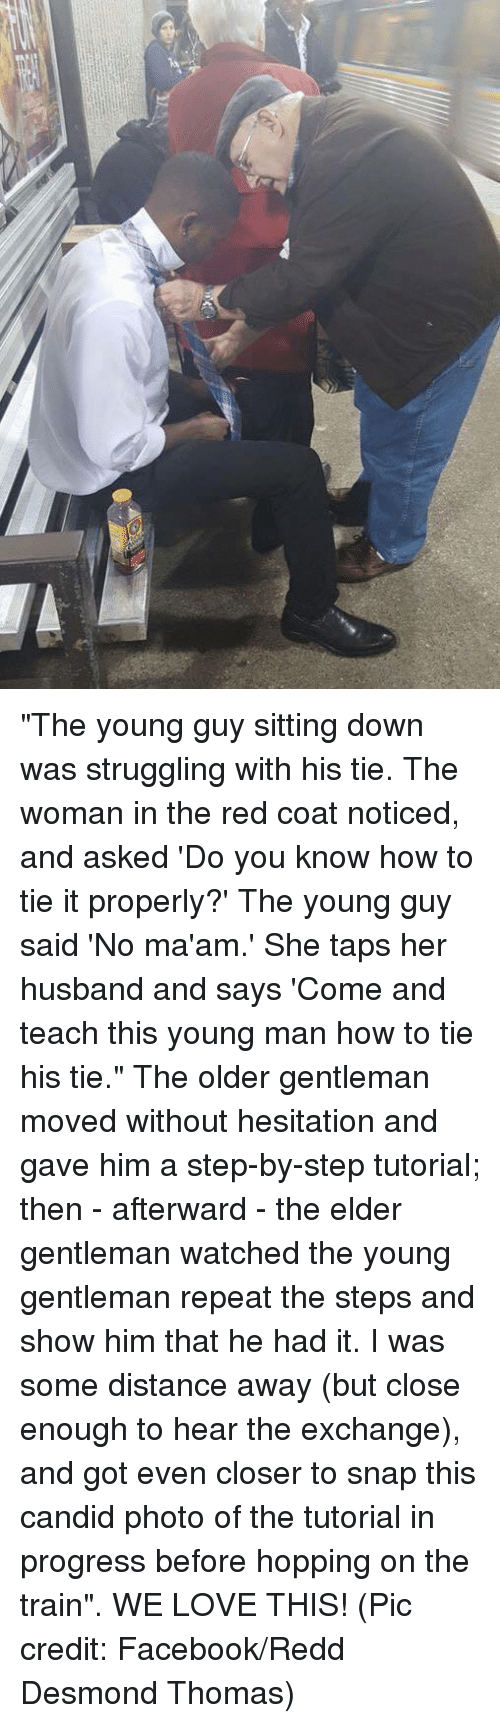 """Facebook, Love, and Memes: """"The young guy sitting down was struggling with his tie. The woman in the red coat noticed, and asked 'Do you know how to tie it properly?' The young guy said 'No ma'am.' She taps her husband and says 'Come and teach this young man how to tie his tie."""" The older gentleman moved without hesitation and gave him a step-by-step tutorial; then - afterward - the elder gentleman watched the young gentleman repeat the steps and show him that he had it. I was some distance away (but close enough to hear the exchange), and got even closer to snap this candid photo of the tutorial in progress before hopping on the train"""". WE LOVE THIS! (Pic credit: Facebook/Redd Desmond Thomas)"""